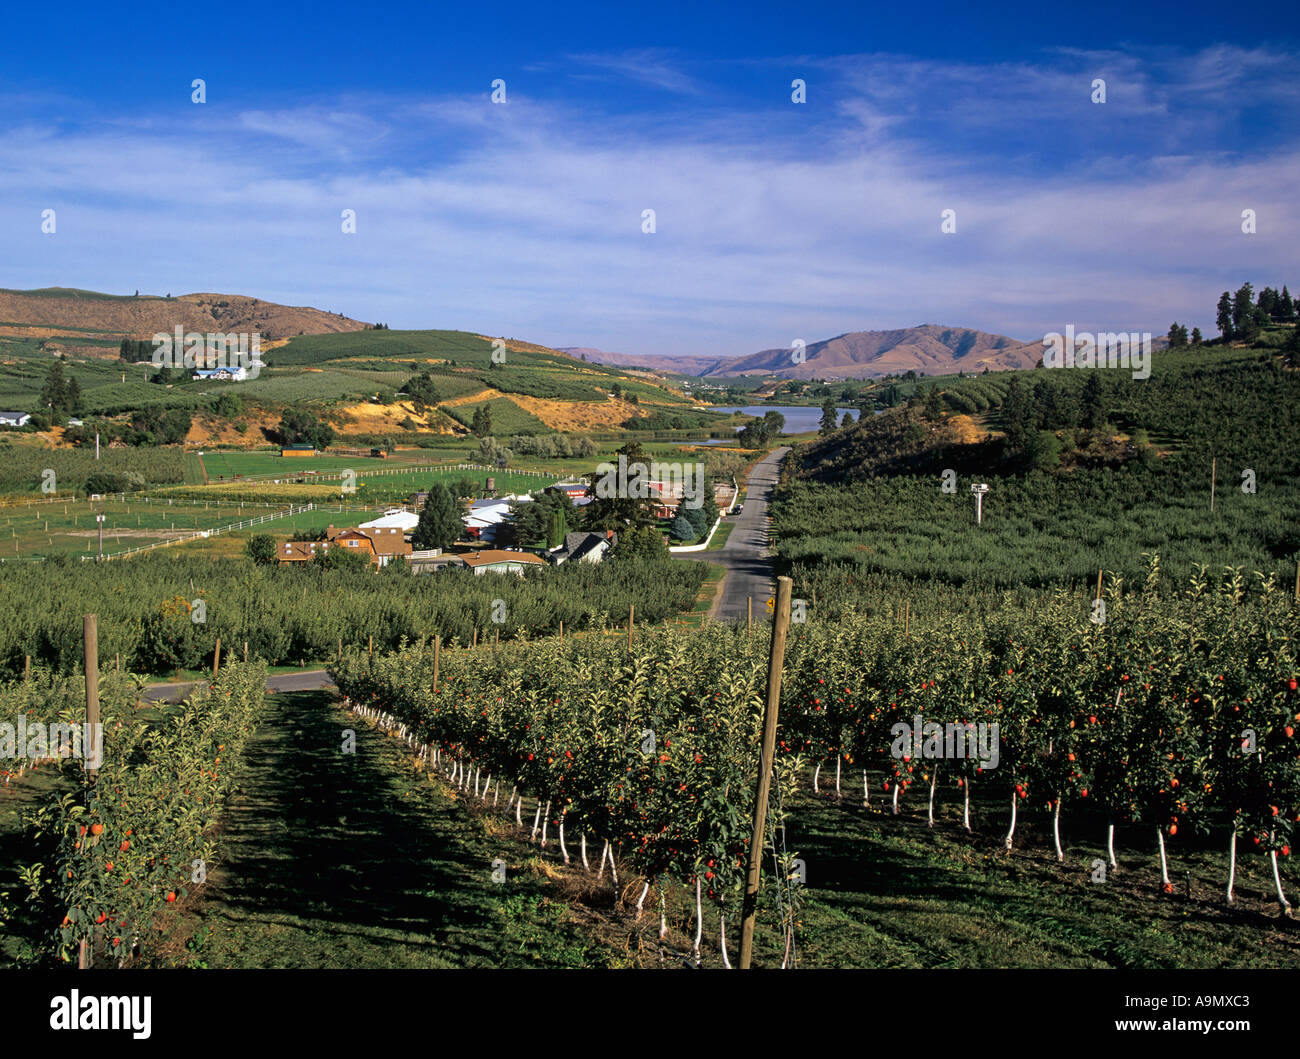 MANSON WASHINGTON STATE USA August Looking across the fruit orchards to Banjo Creek Farm Dry Lake Stock Photo